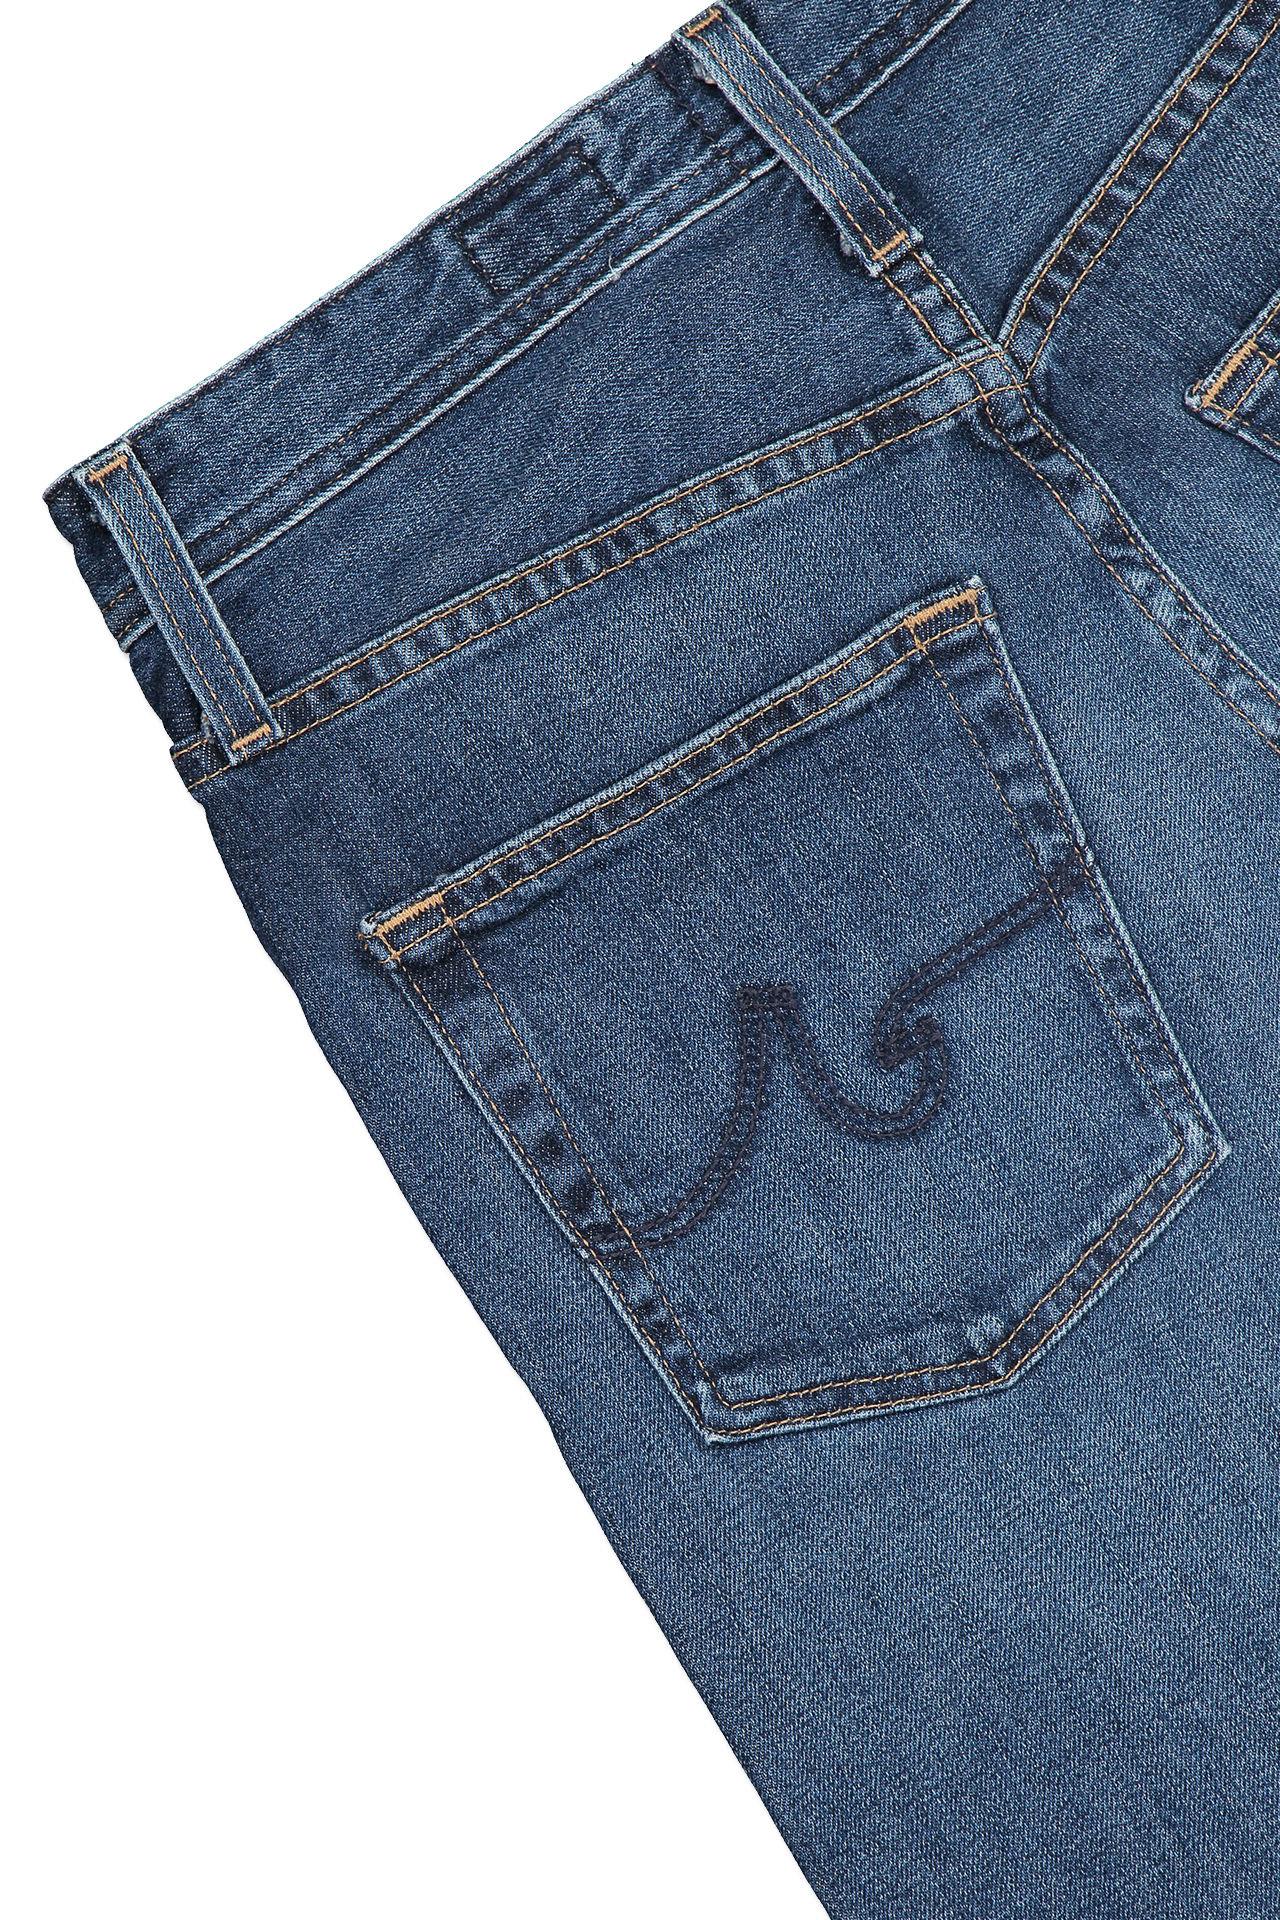 back pocket detail image of AG Women's Etta Denim Blue Glory